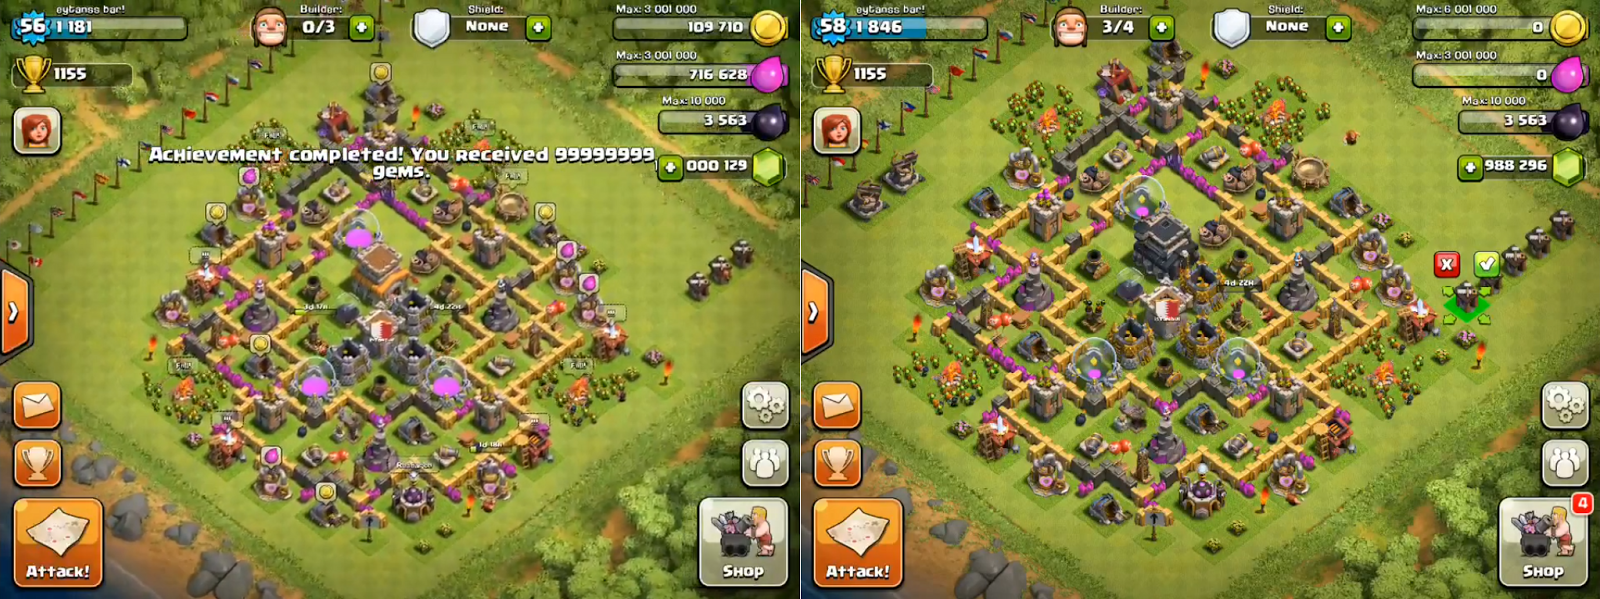 GET] Clash of Clans Hack